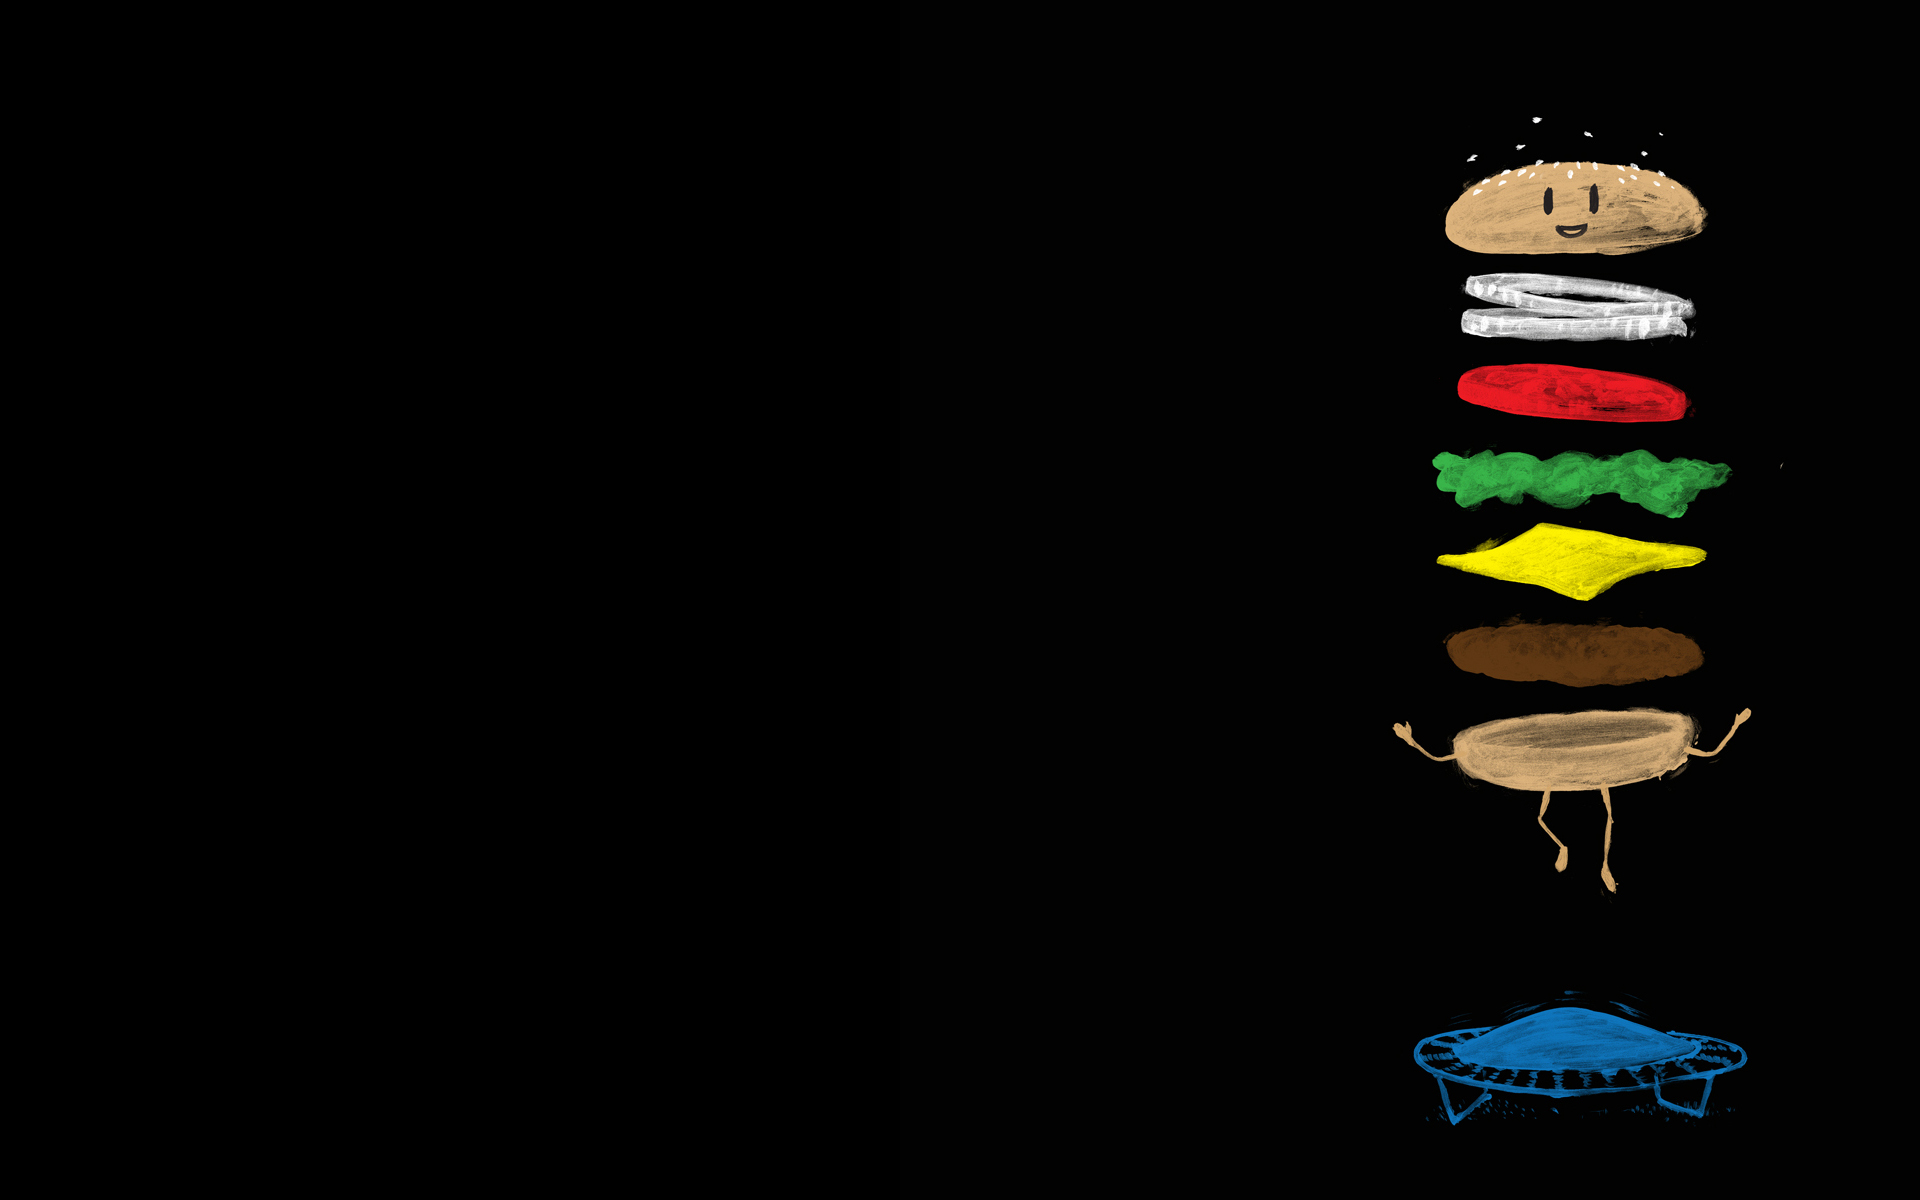 jumping hamburgers Burger xermy HD Wallpaper